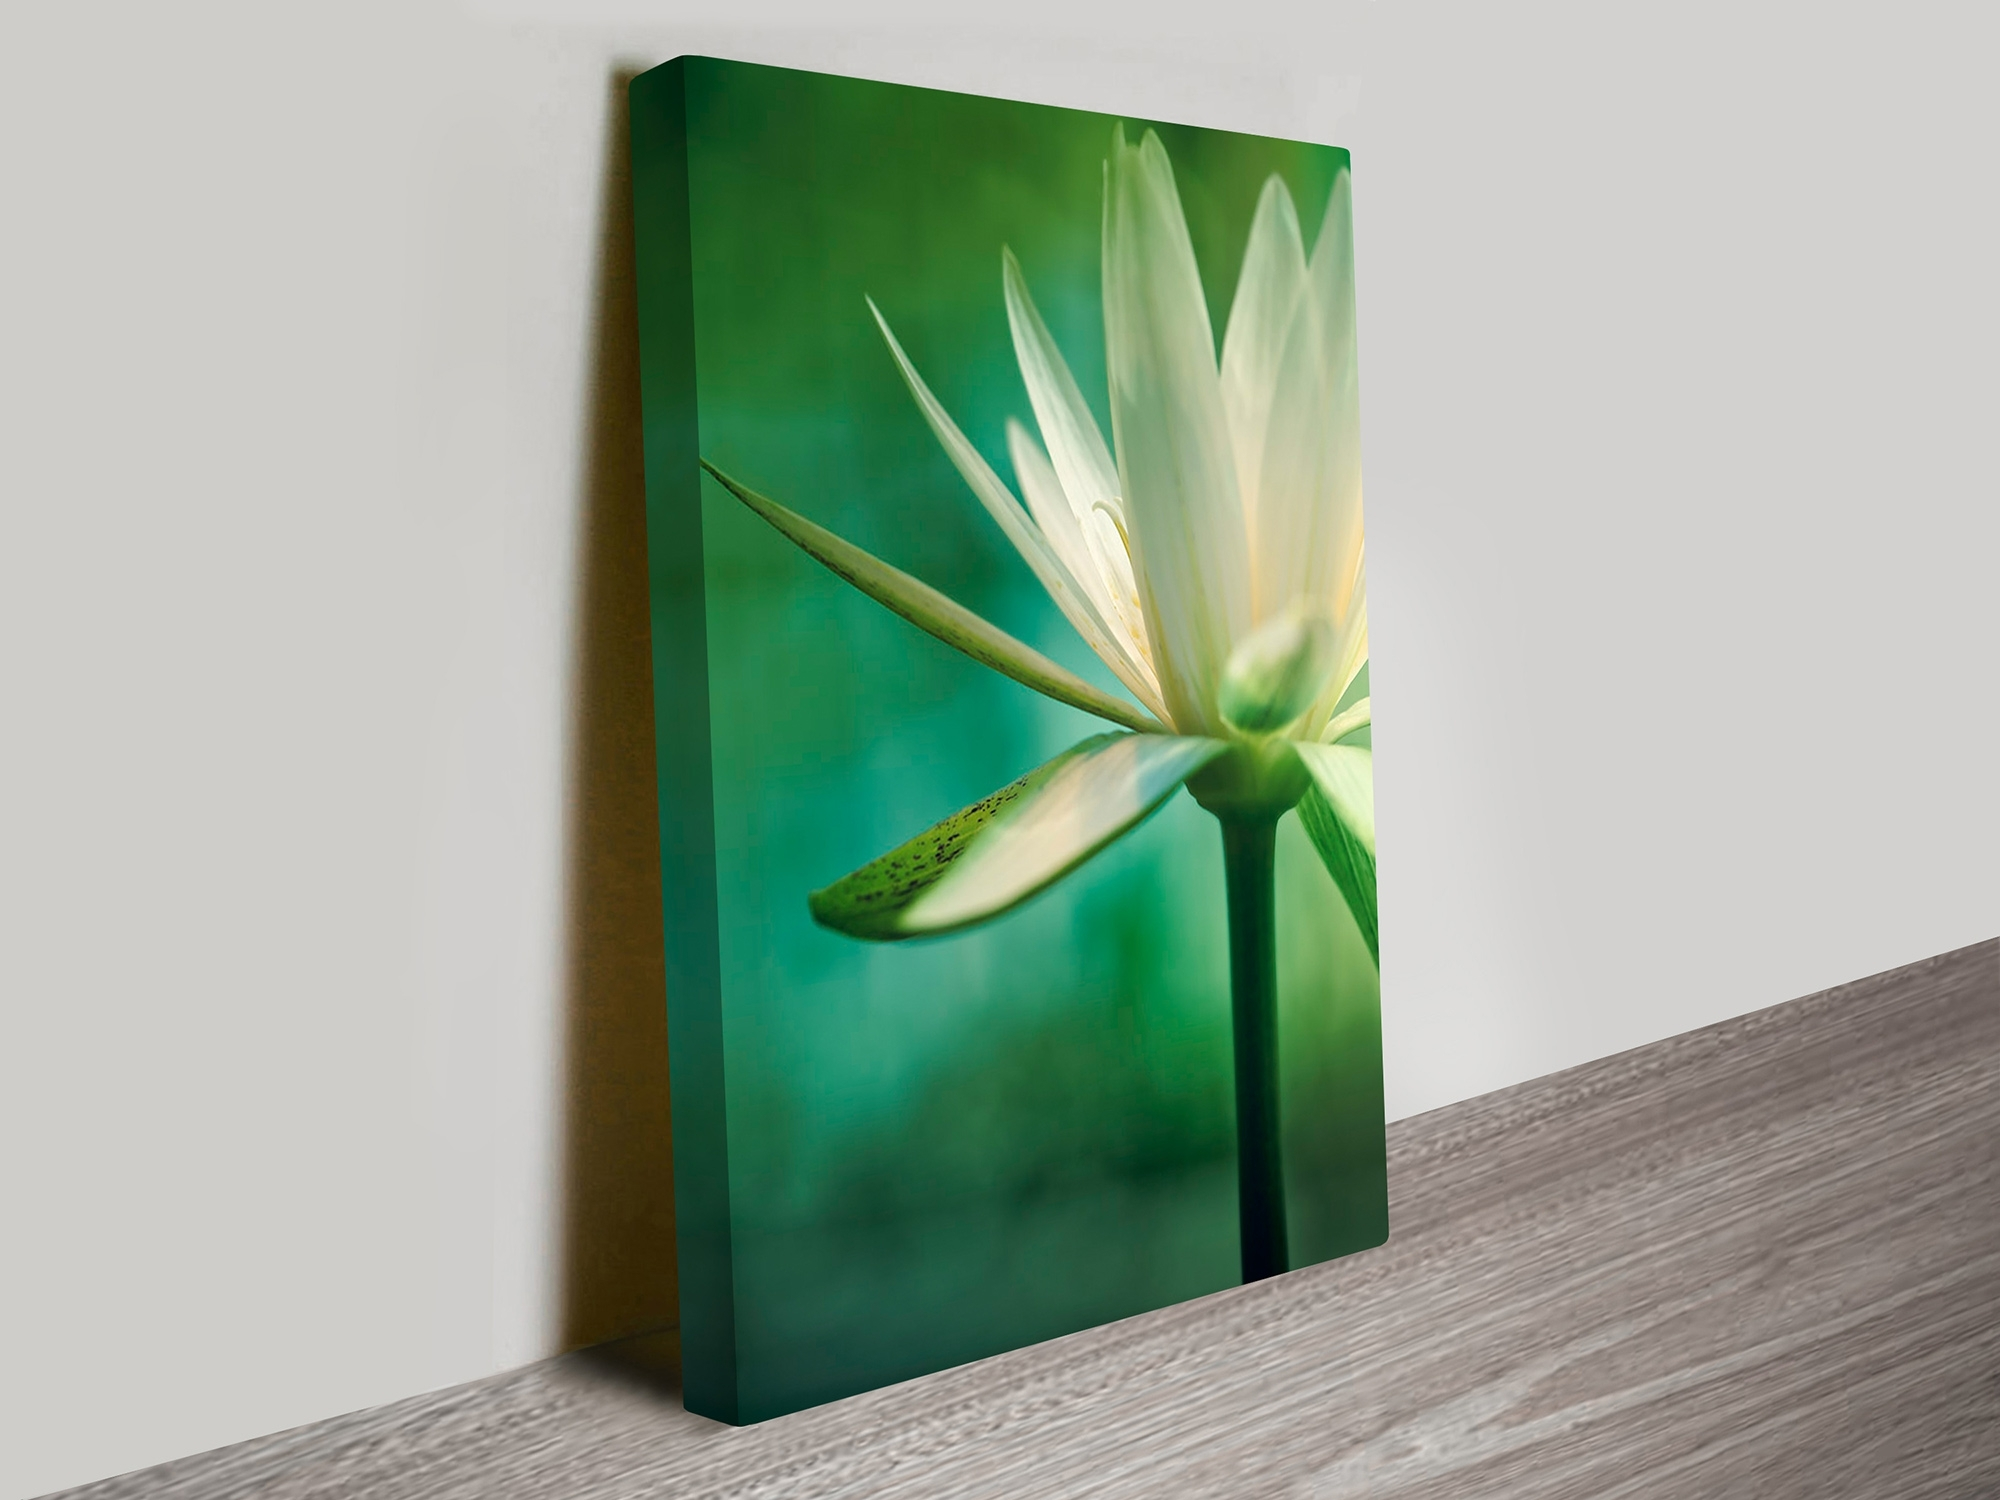 Canvas Wall Art In Australia Regarding Preferred Flower Artwork On Canvas Prints Australia (View 4 of 15)